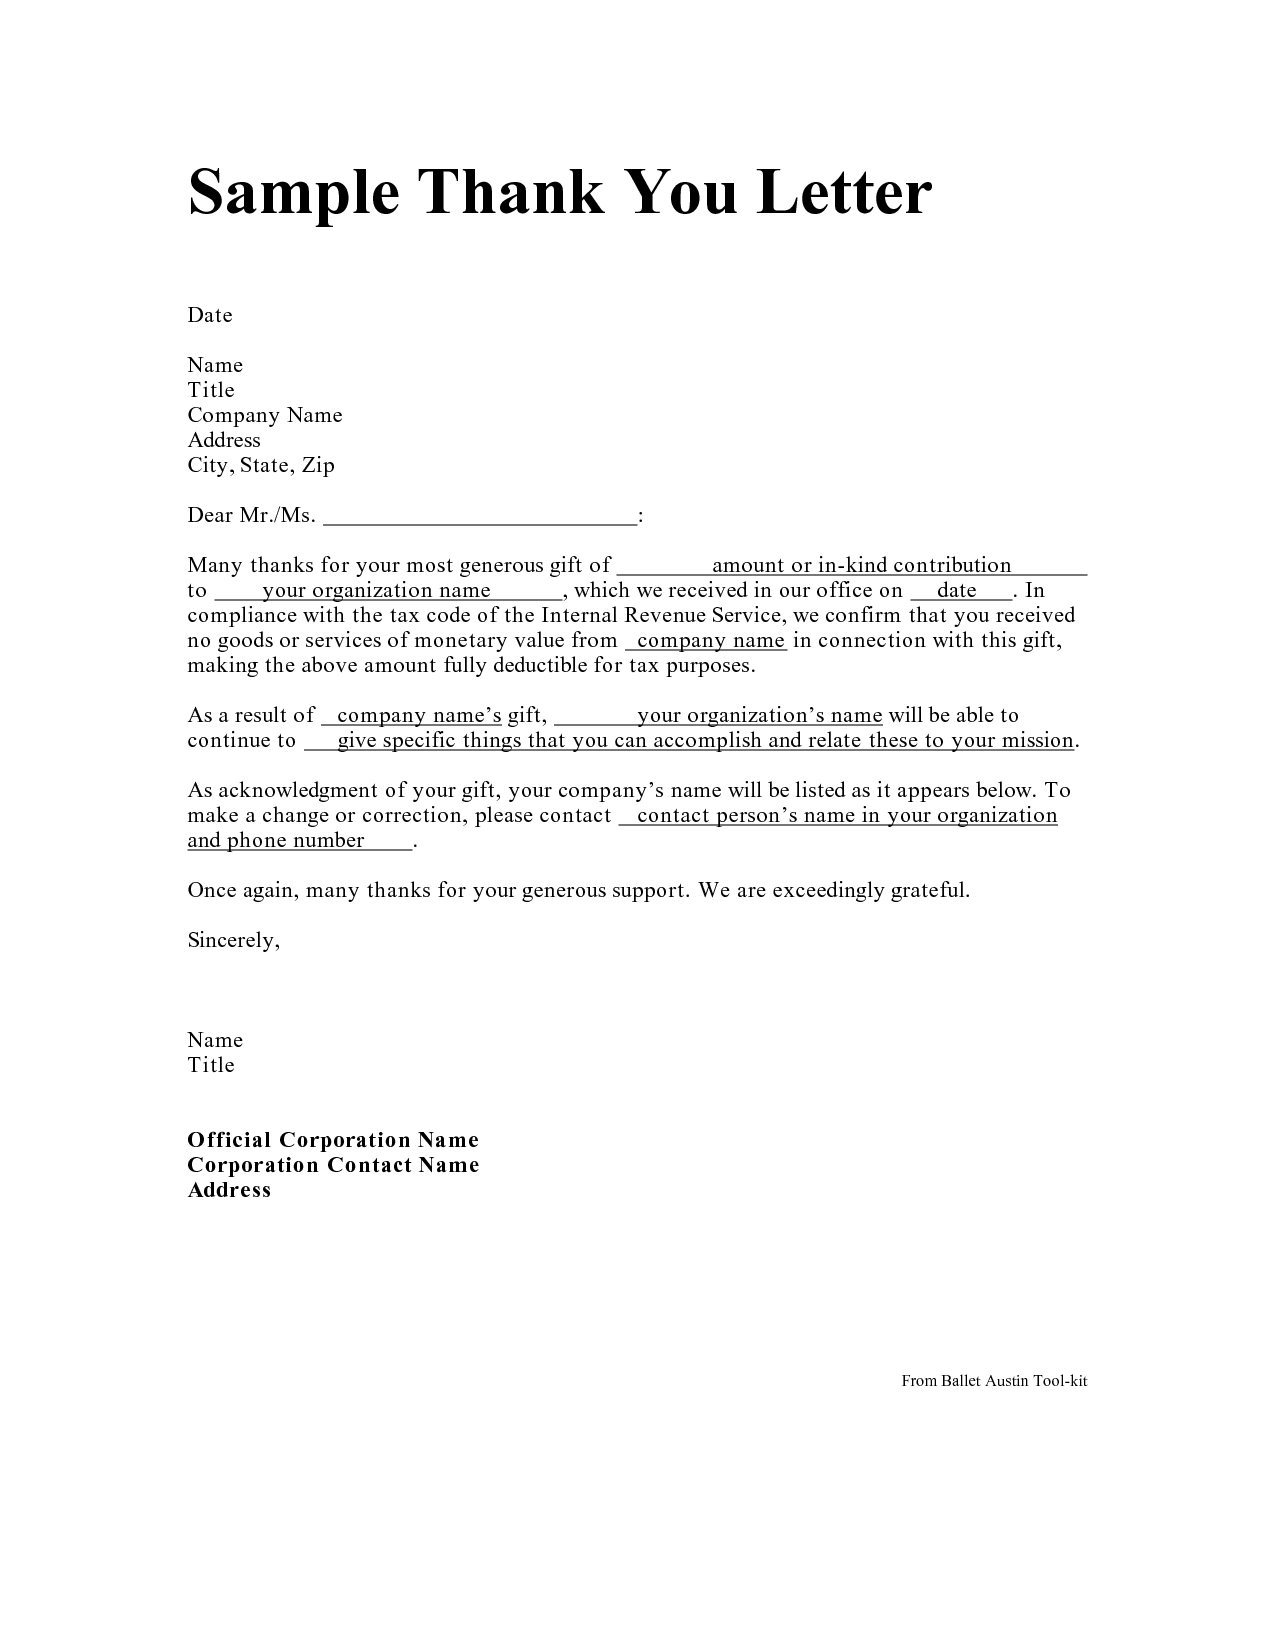 How to Write A Donation Request Letter Template - Personal Thank You Letter Personal Thank You Letter Samples